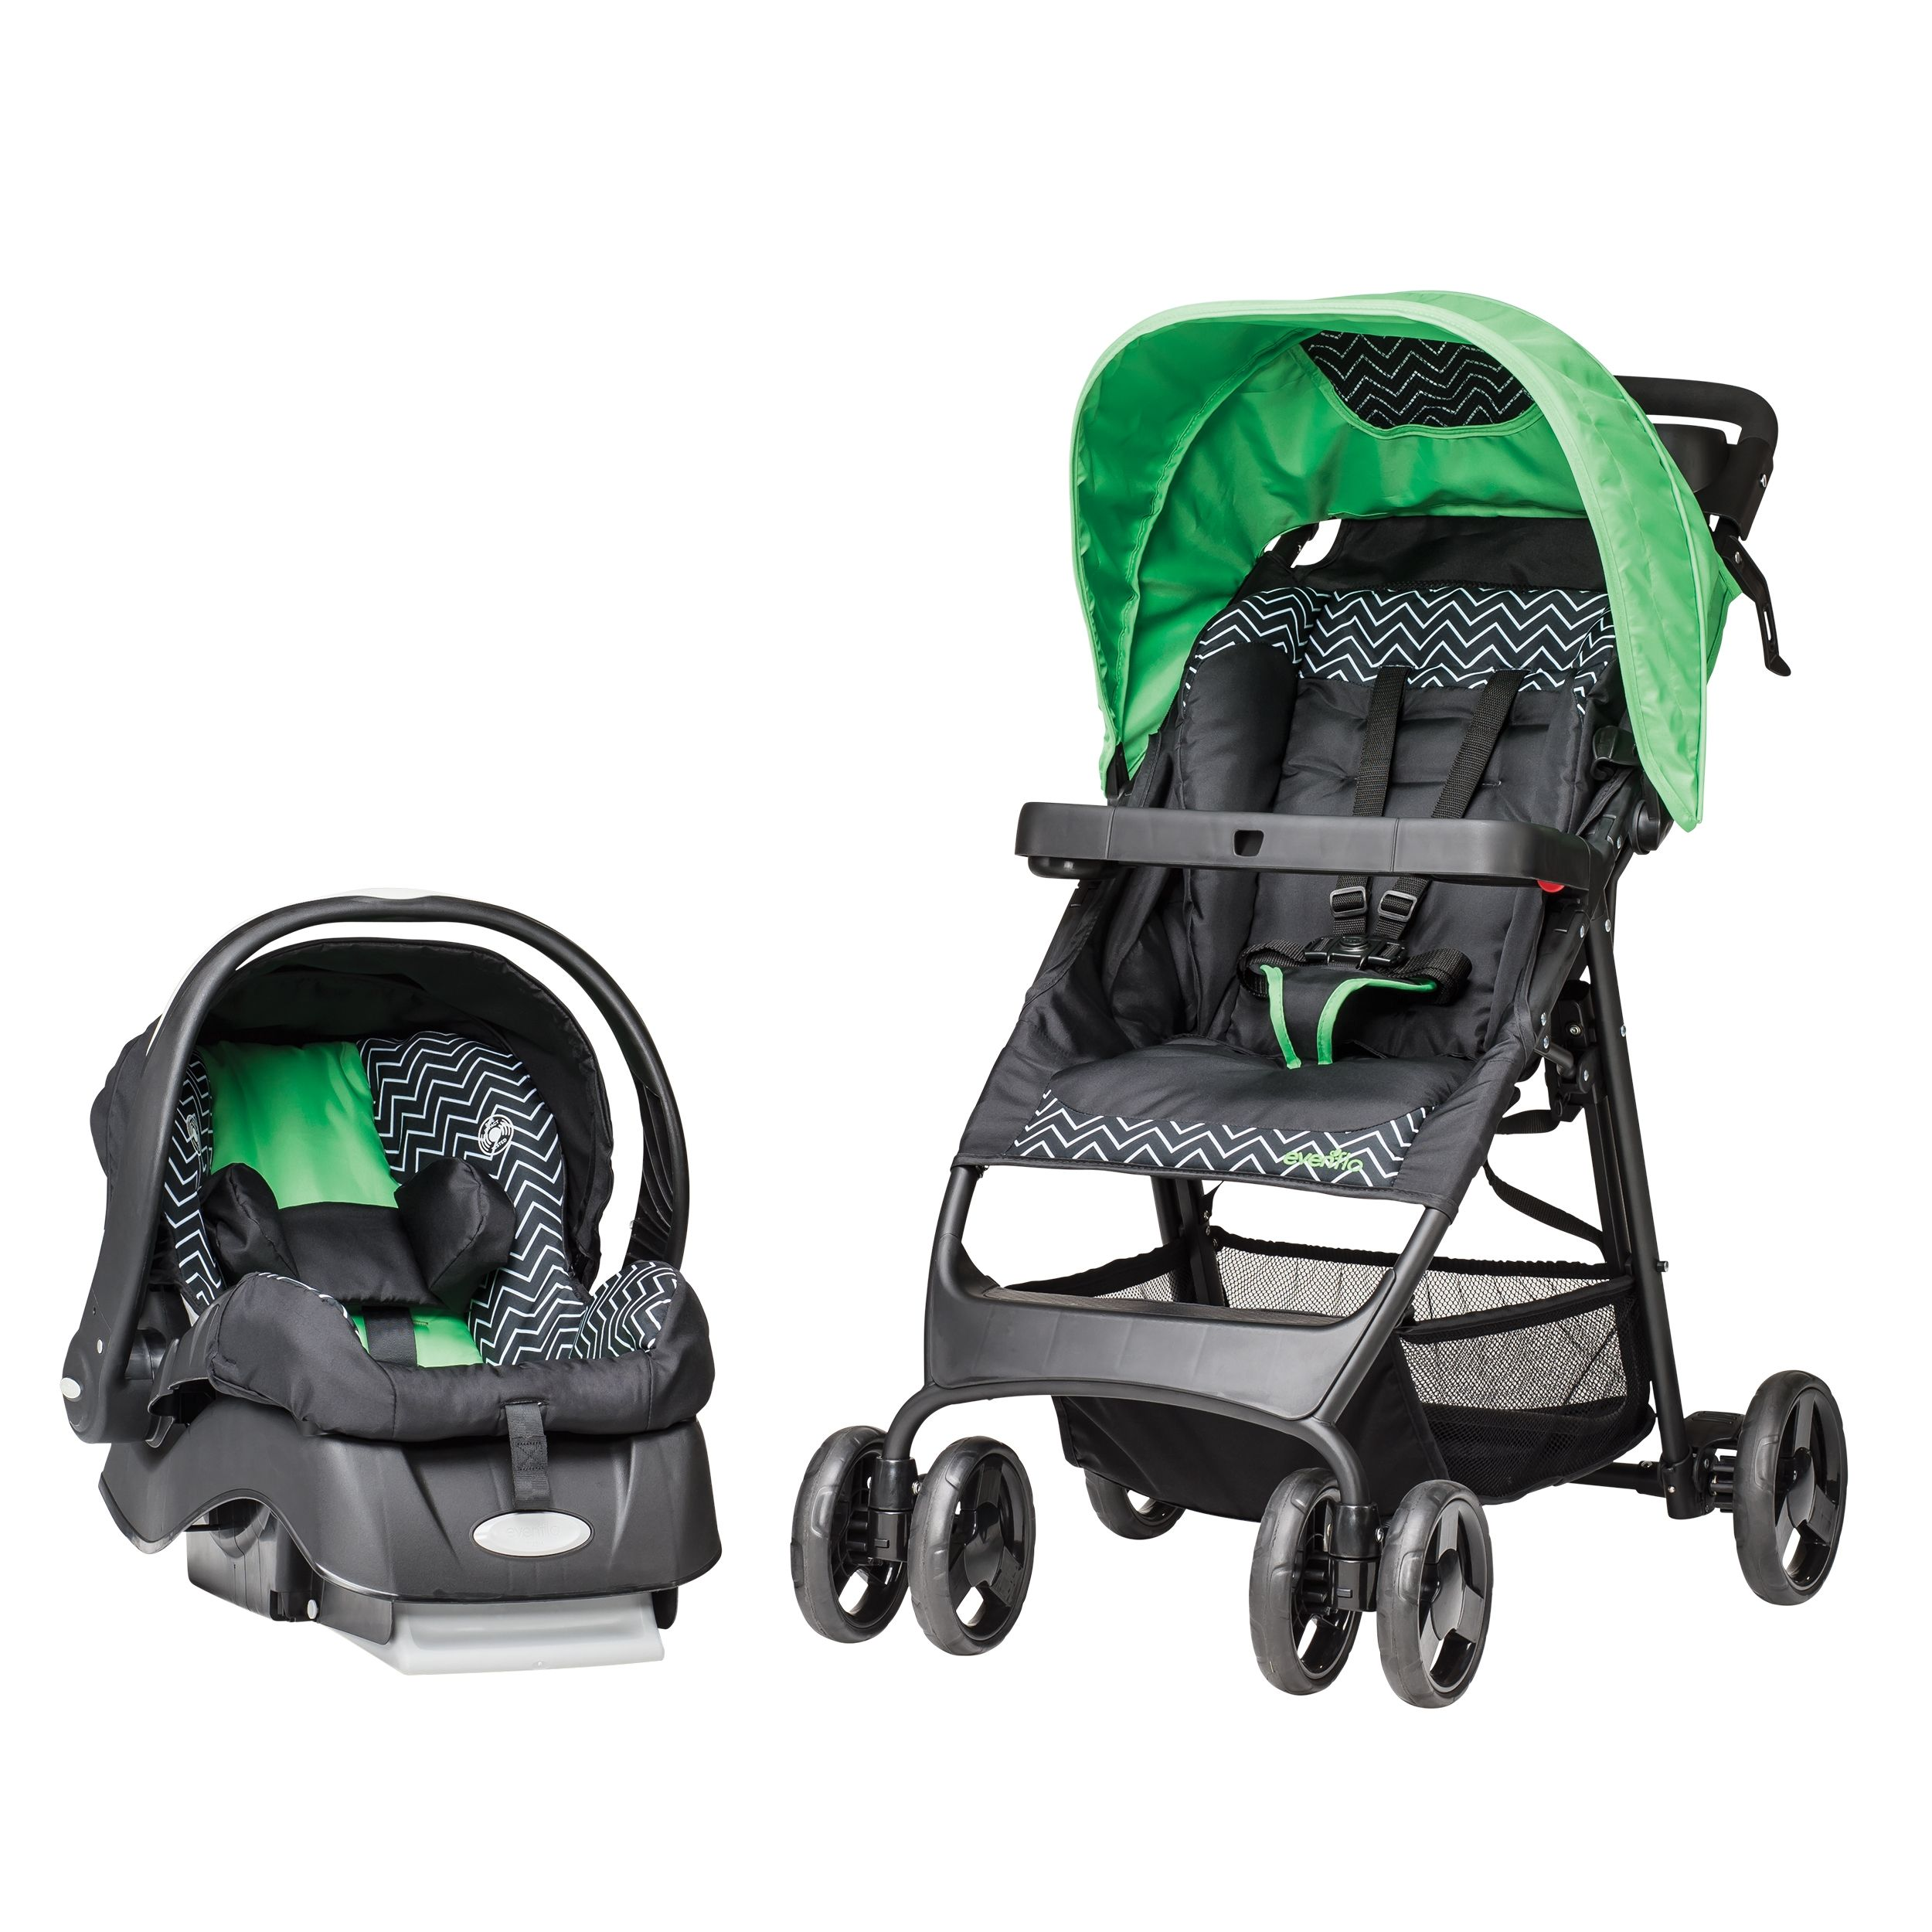 FlexLite Travel System Kmart Travel system, Evenflo